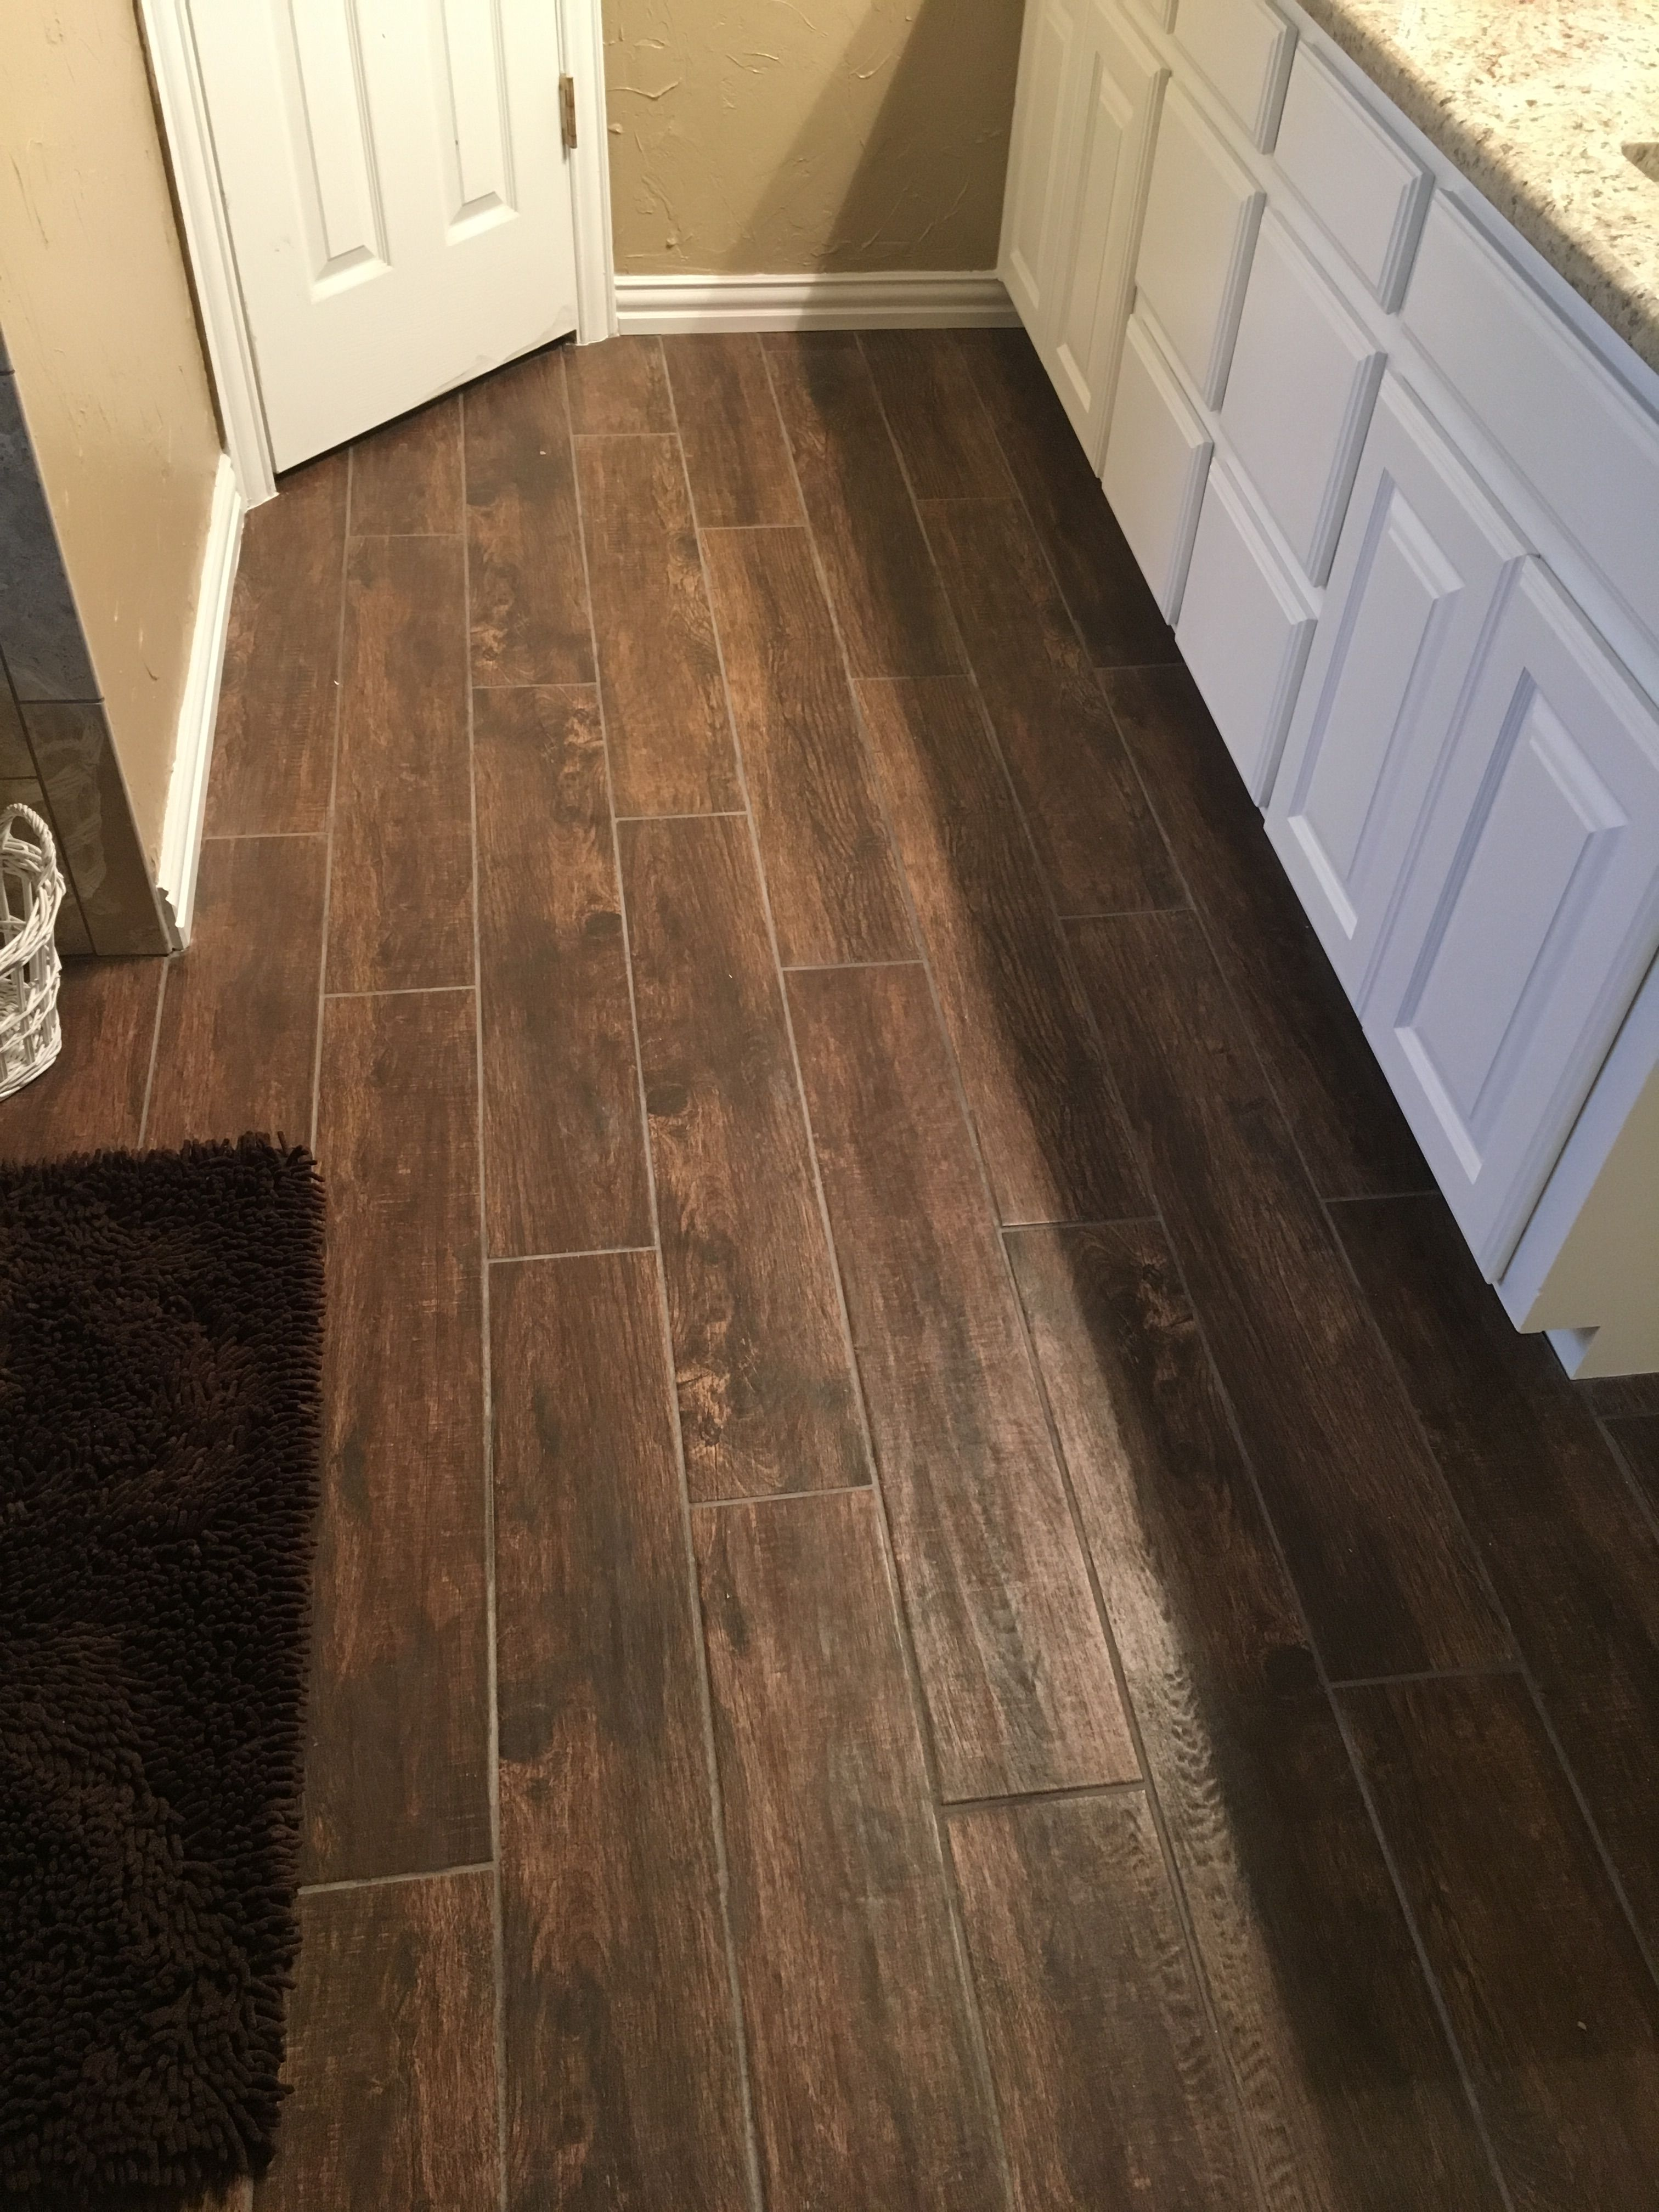 Bathroom Porcelain Tile Texas Castano 3x36 Made To Look Like Wood